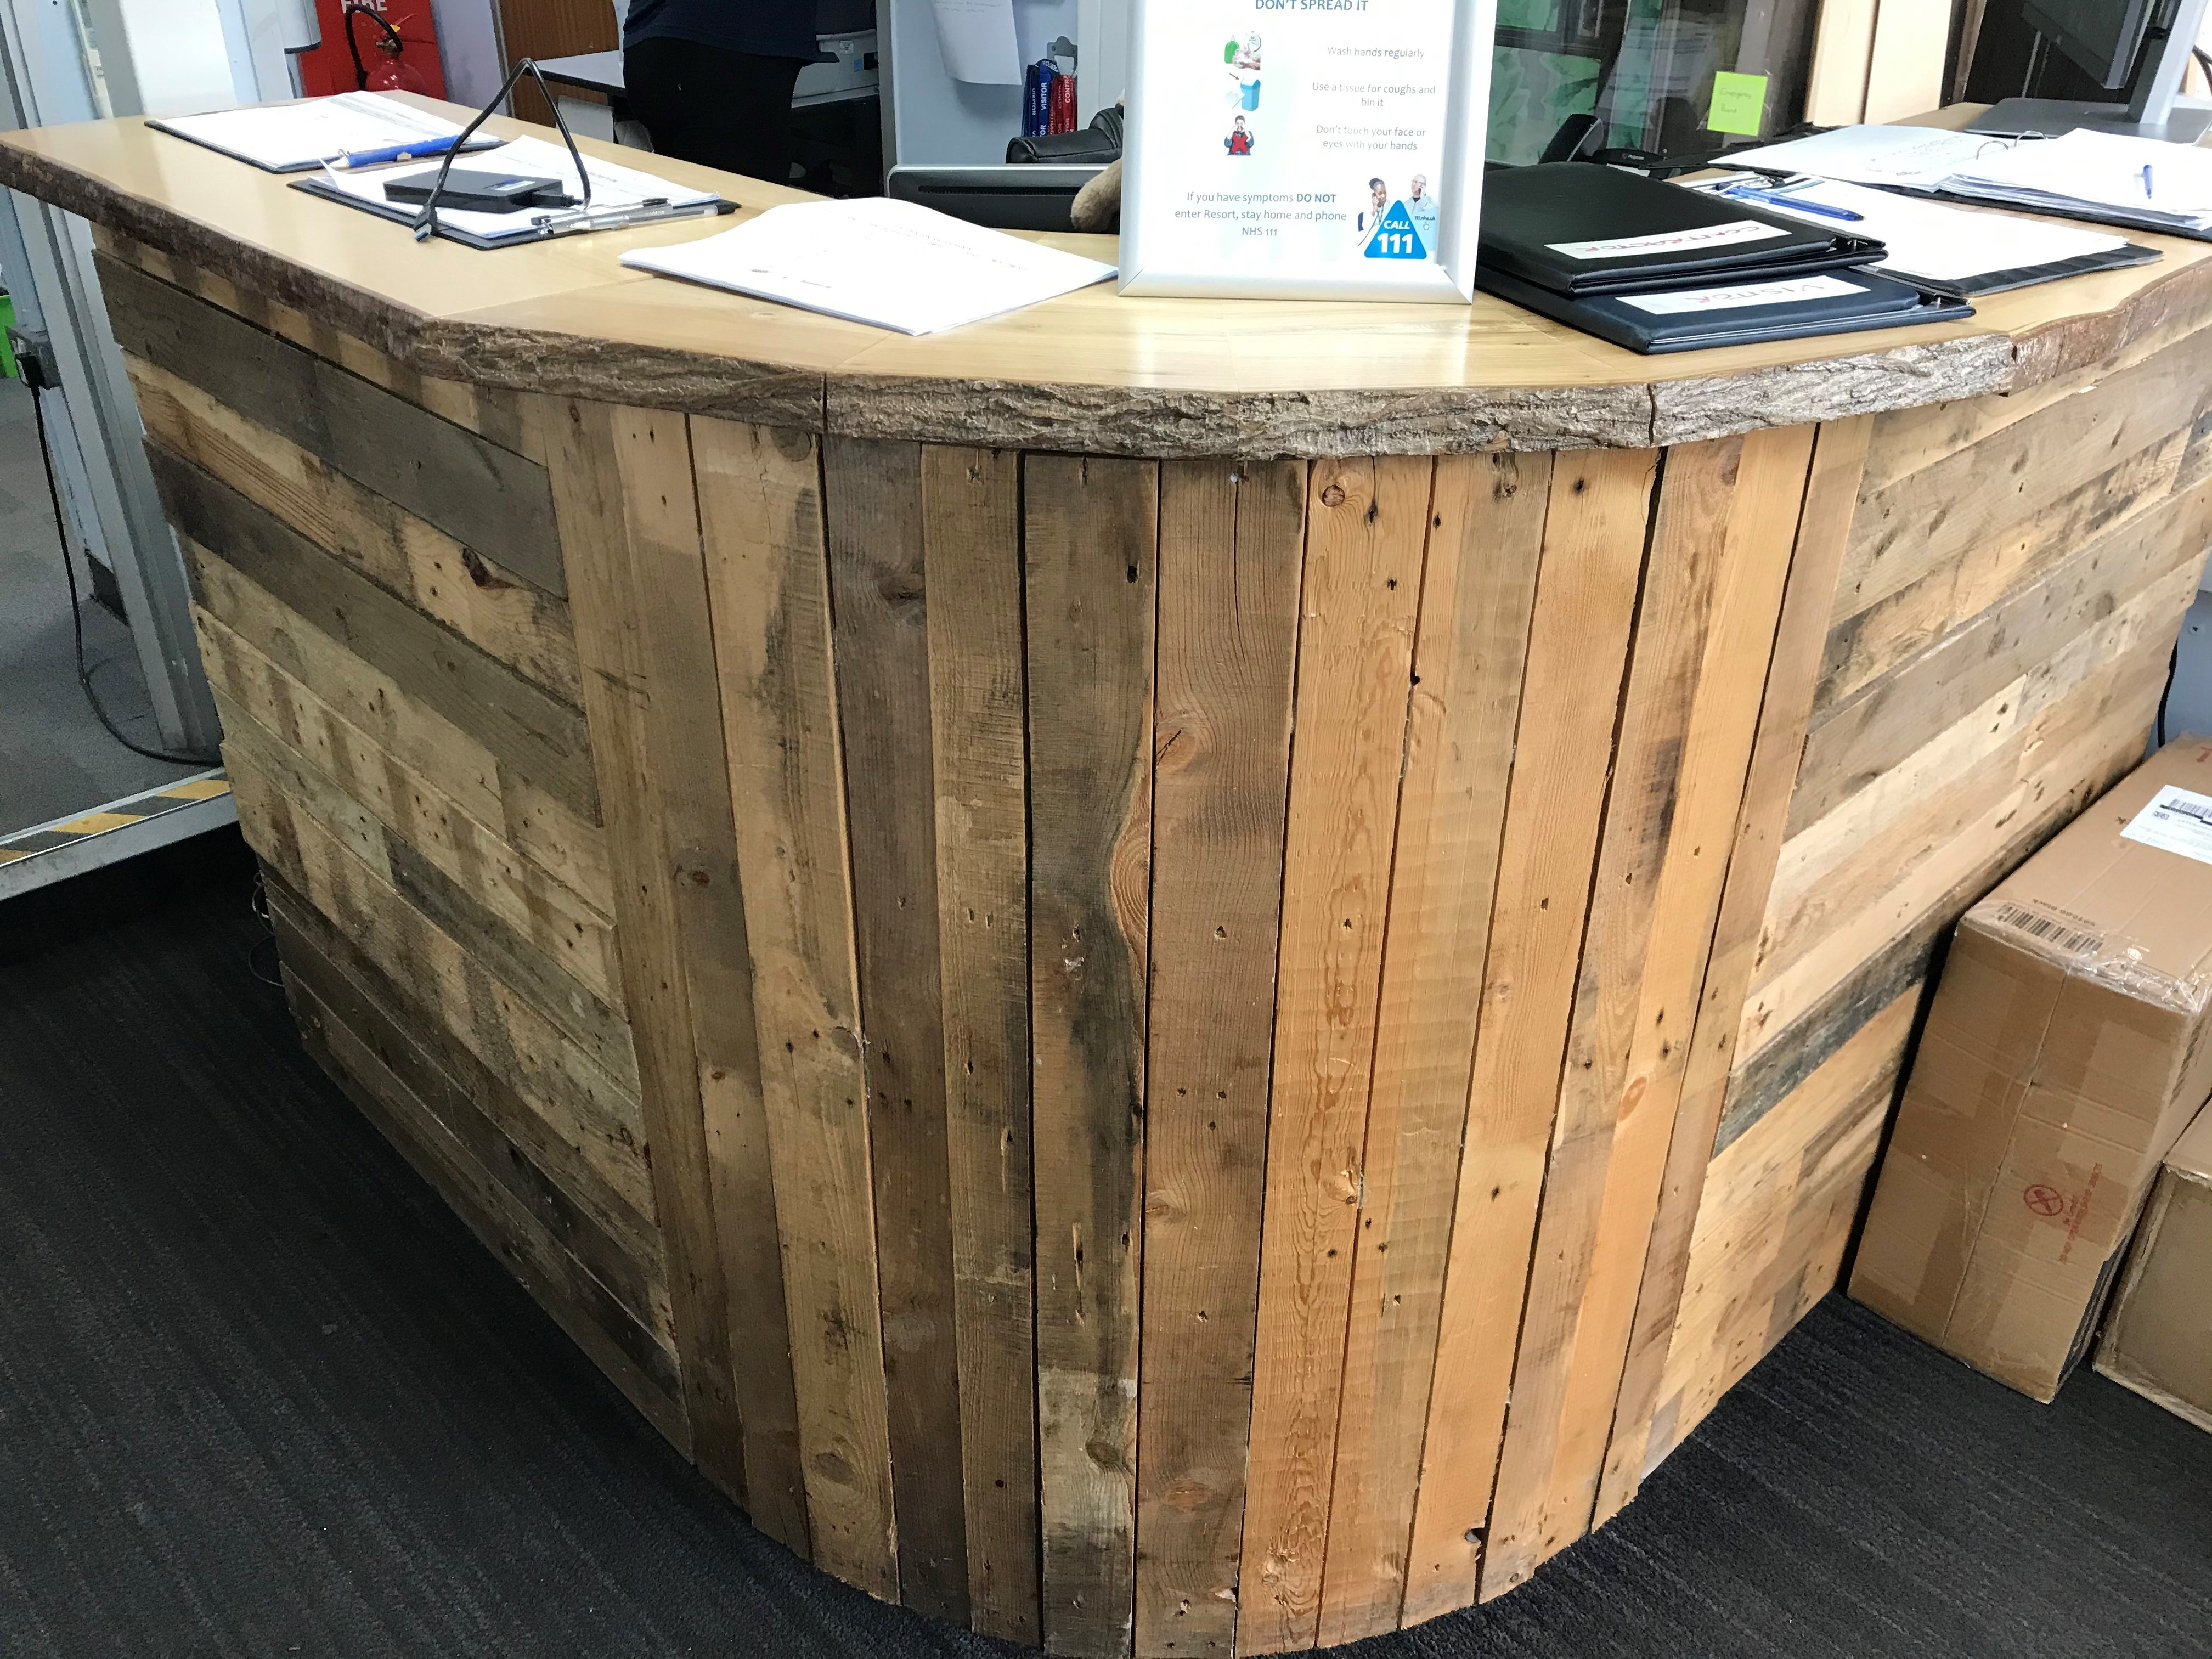 Wooden Desk Recycled